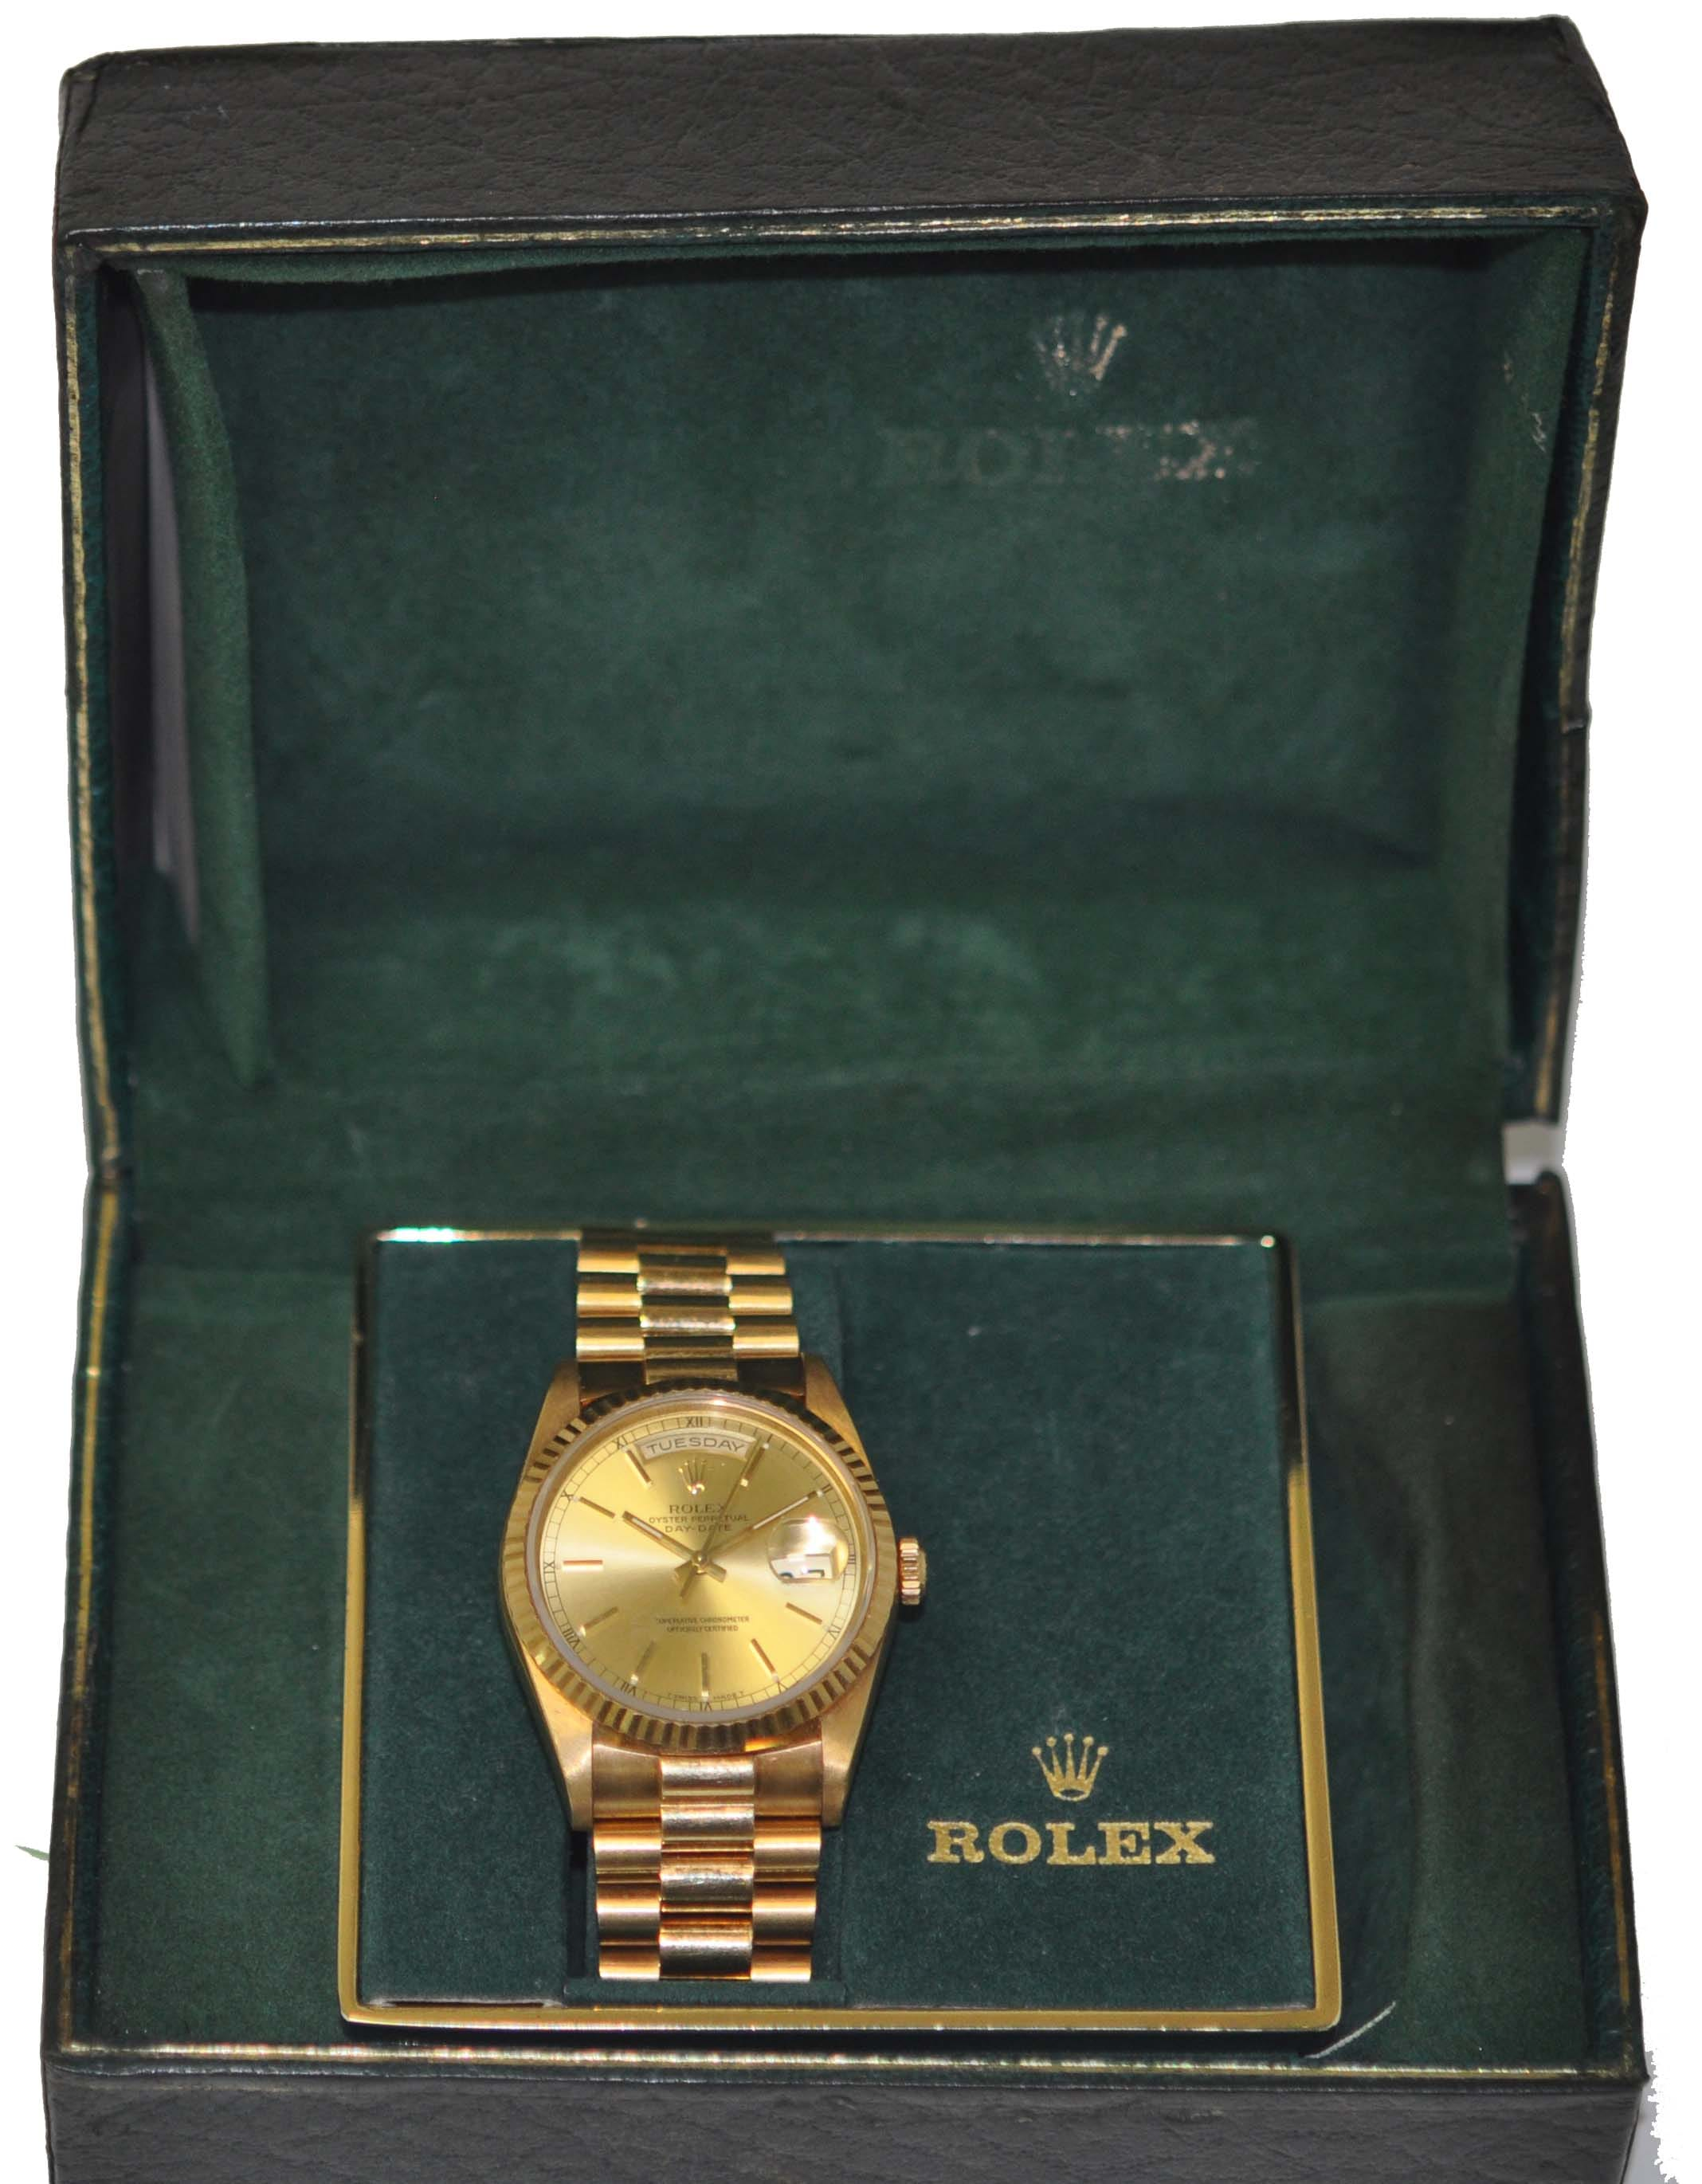 rolex day date watch box green linerrolex watch box survives firerolex box gold day daterolex box fire victim day date watchgreen rolex box & Bobu0027s Rolex Watches Blog Aboutintivar.Com